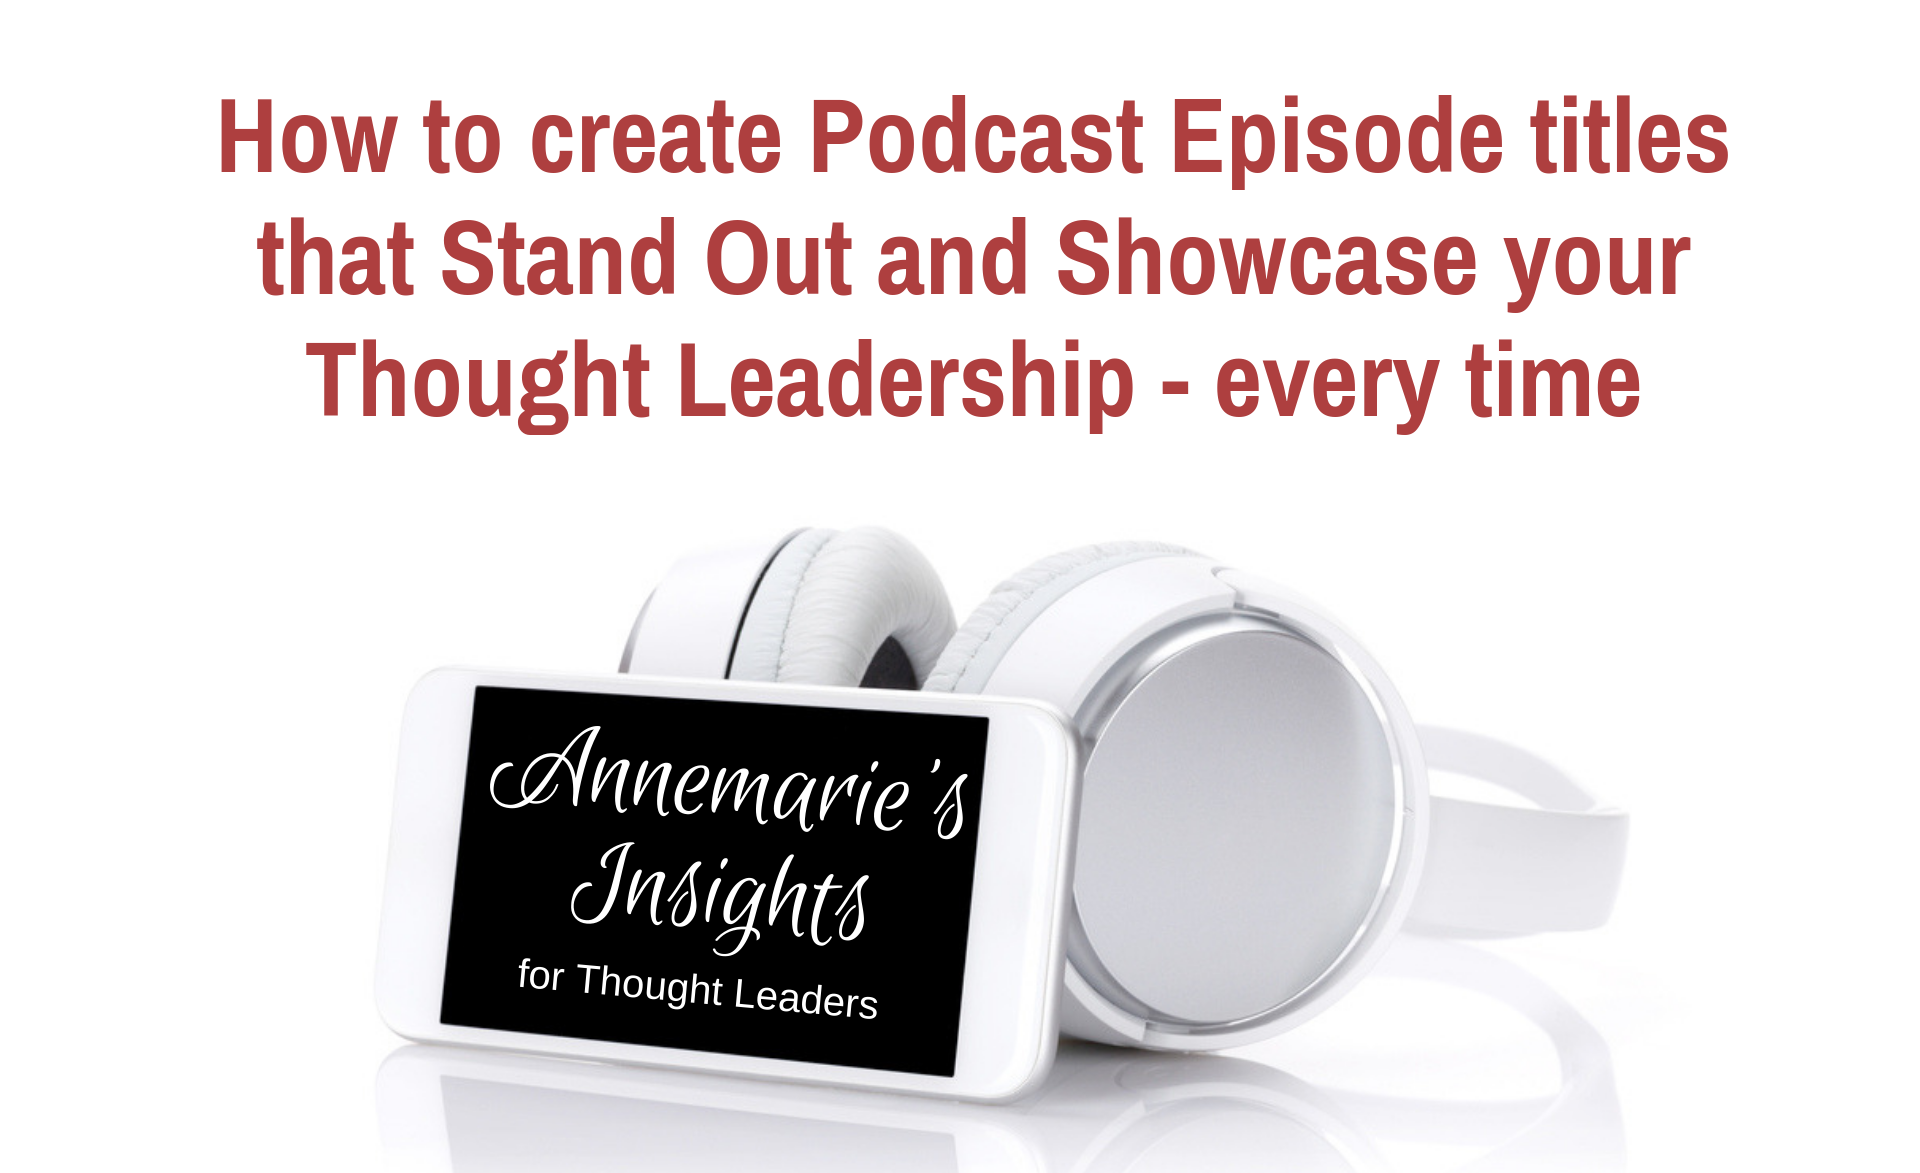 How to create Podcast Episode titles that Stand Out and Showcases your Thought Leadership – every time